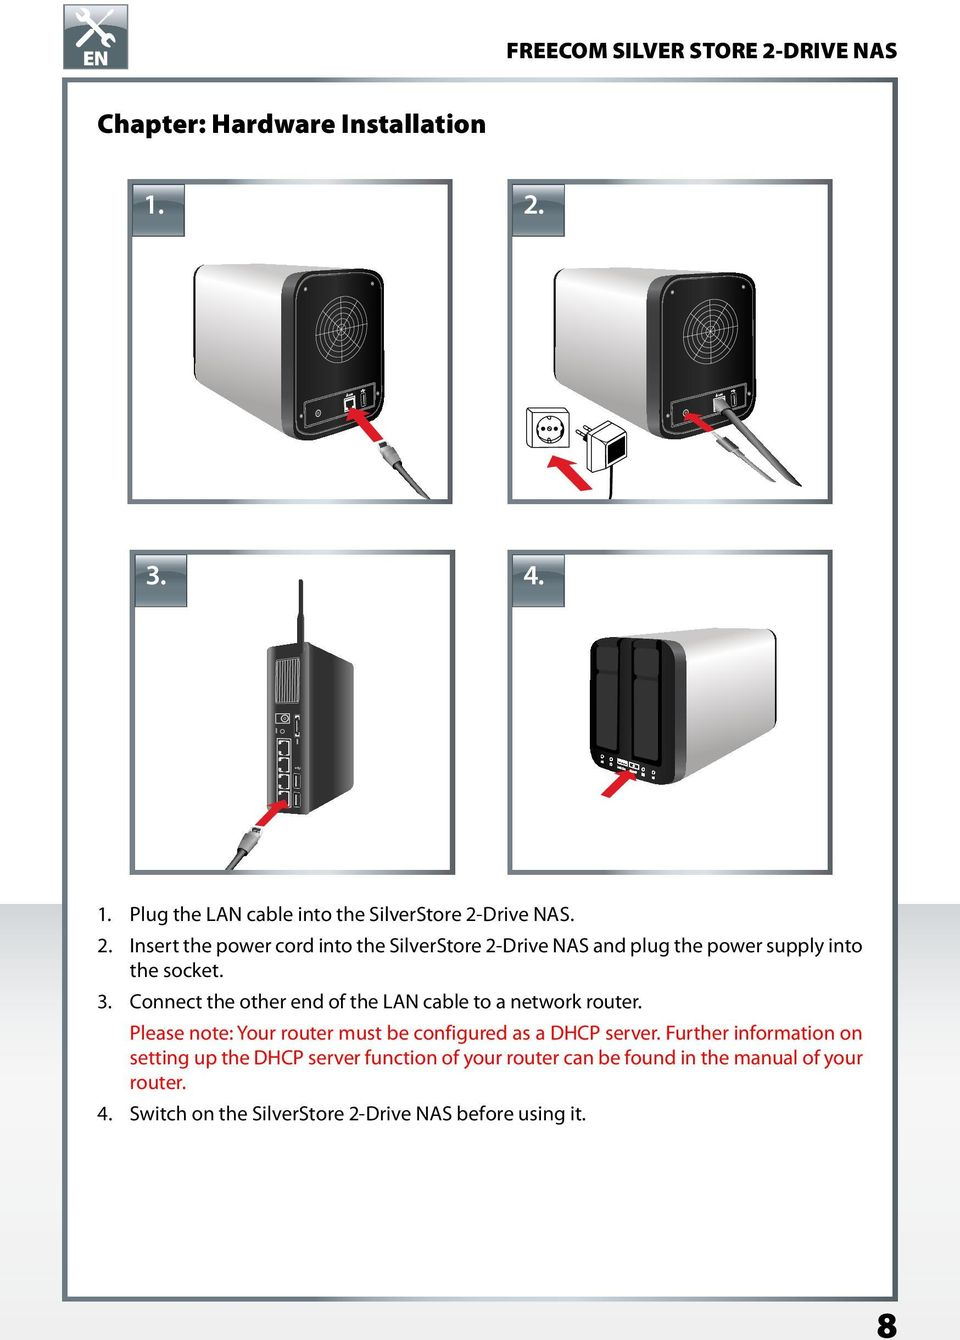 Drive NAS. 2. Insert the power cord into the SilverStore 2-Drive NAS and plug the power supply into the socket. 3.